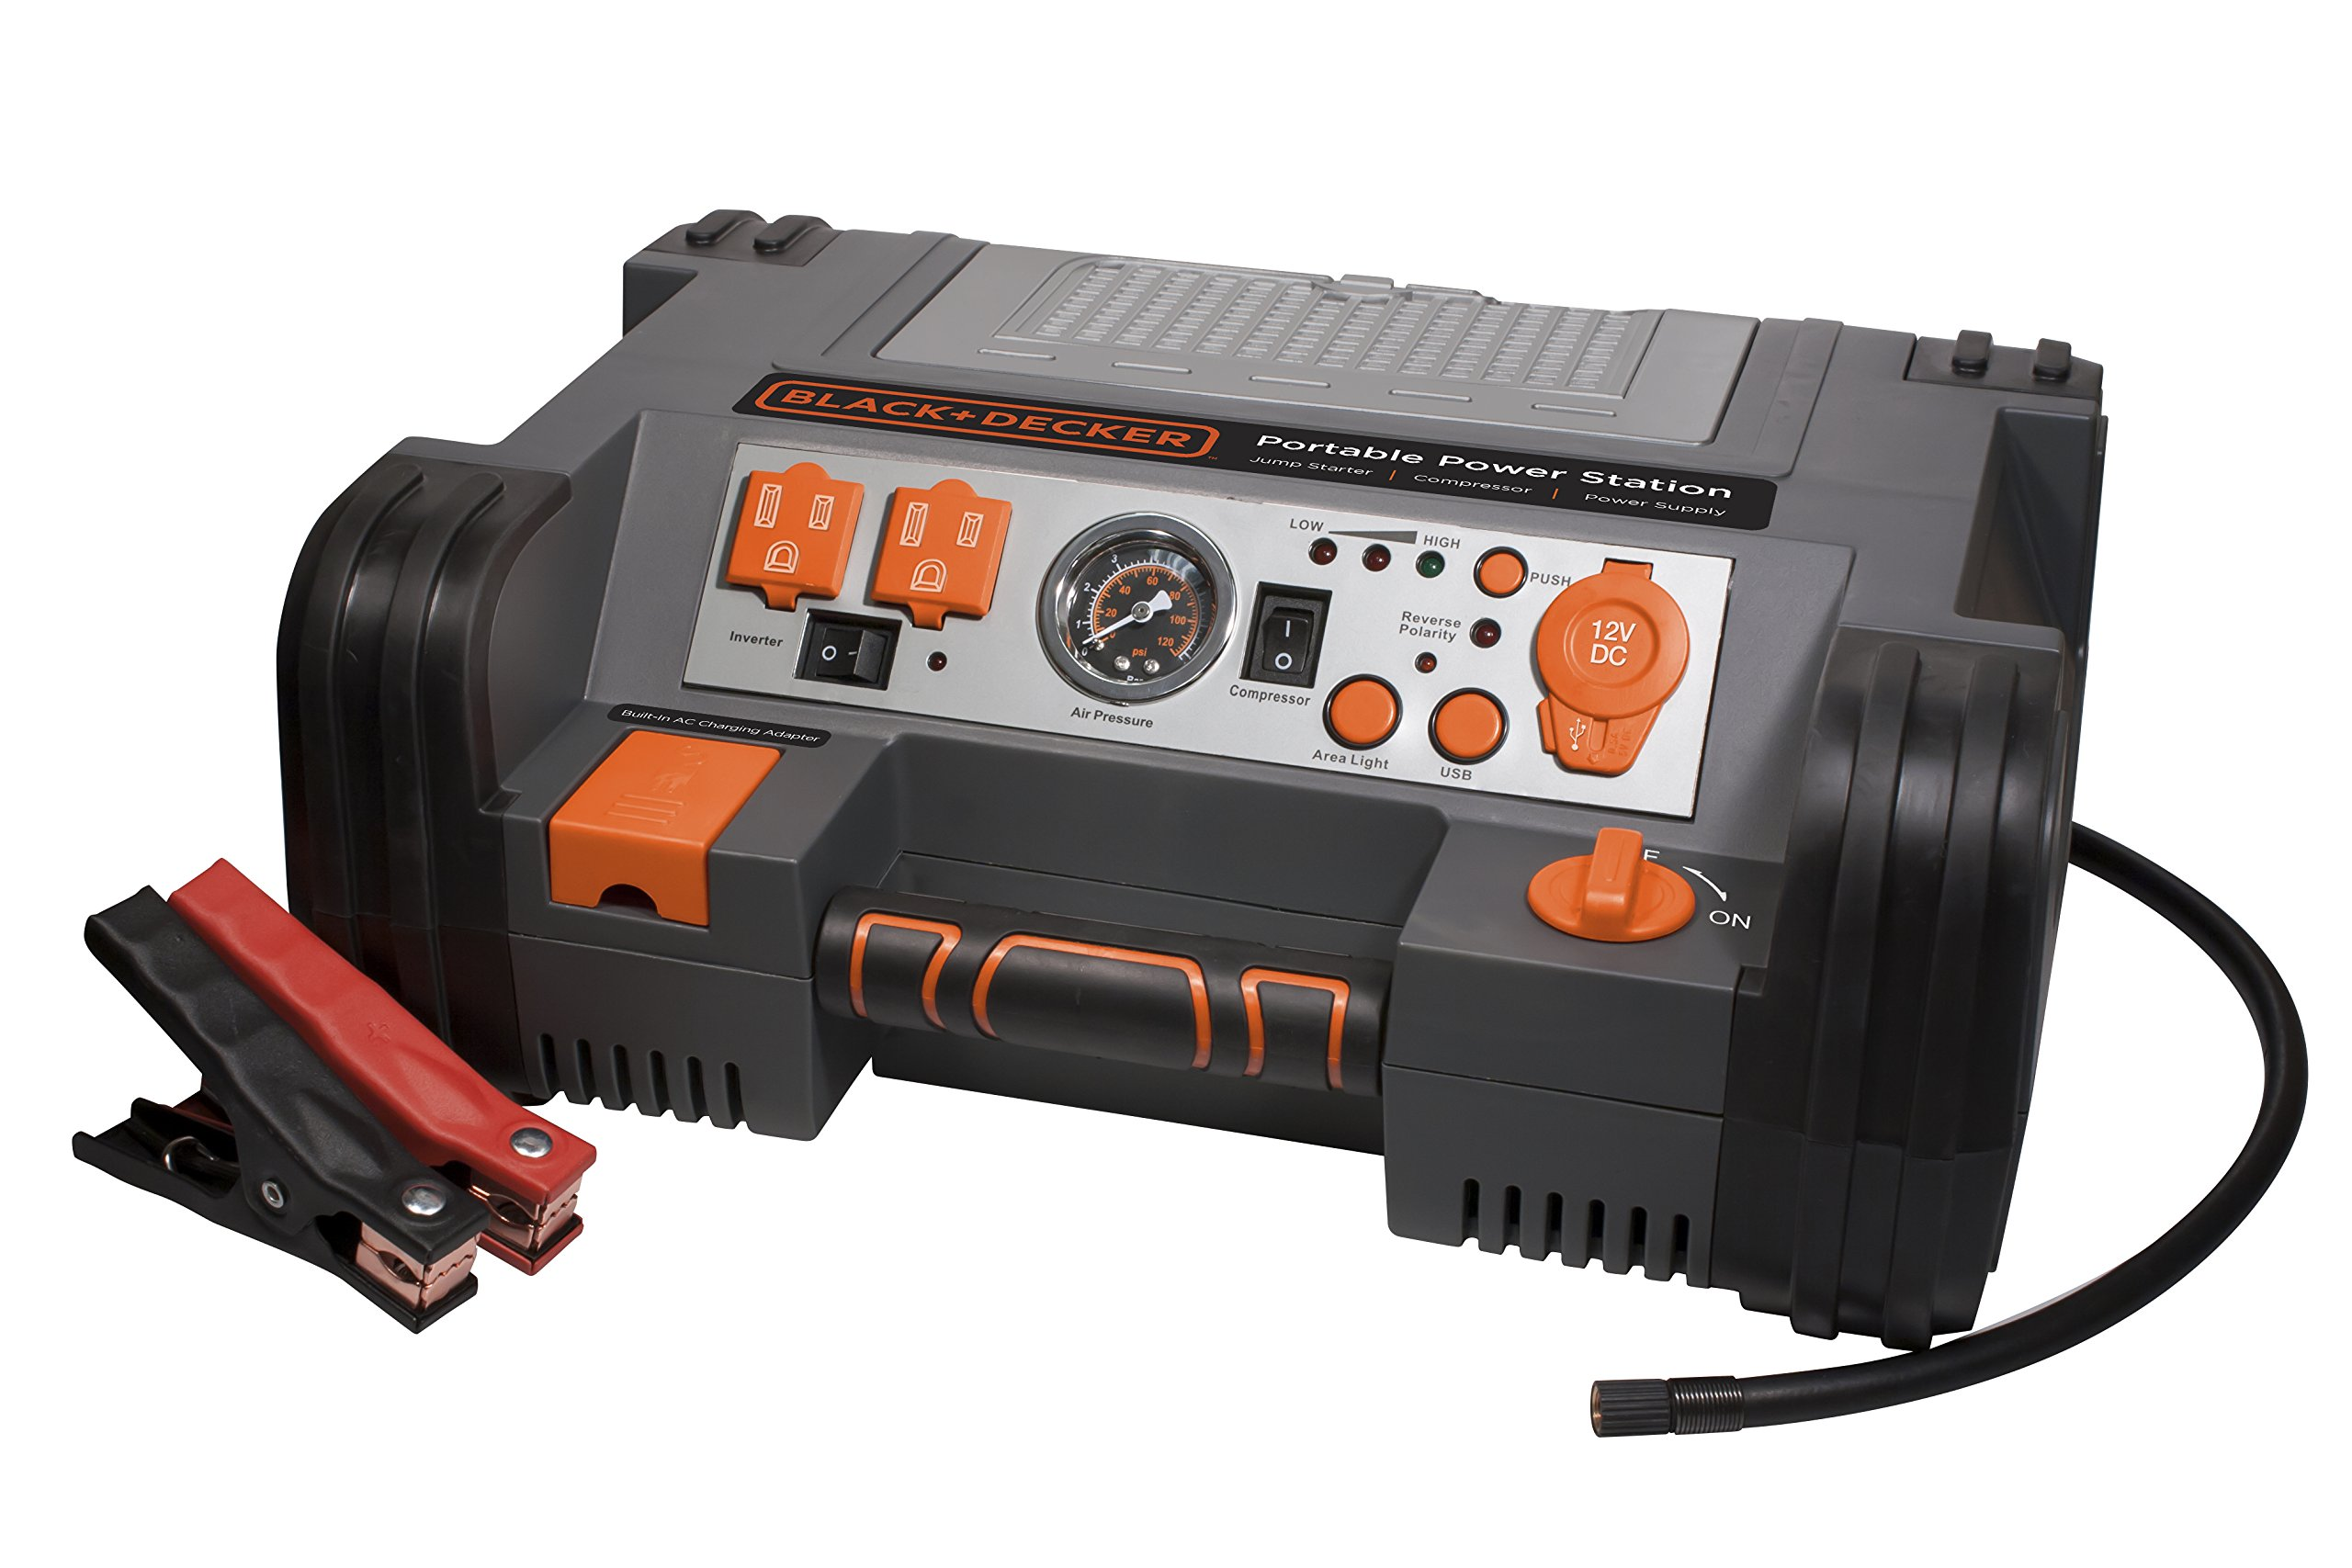 BLACK+DECKER PPRH5B Portable Power Station: 900 Peak/450 Instant Amps, 500W Inverter, 120 PSI Air Compressor